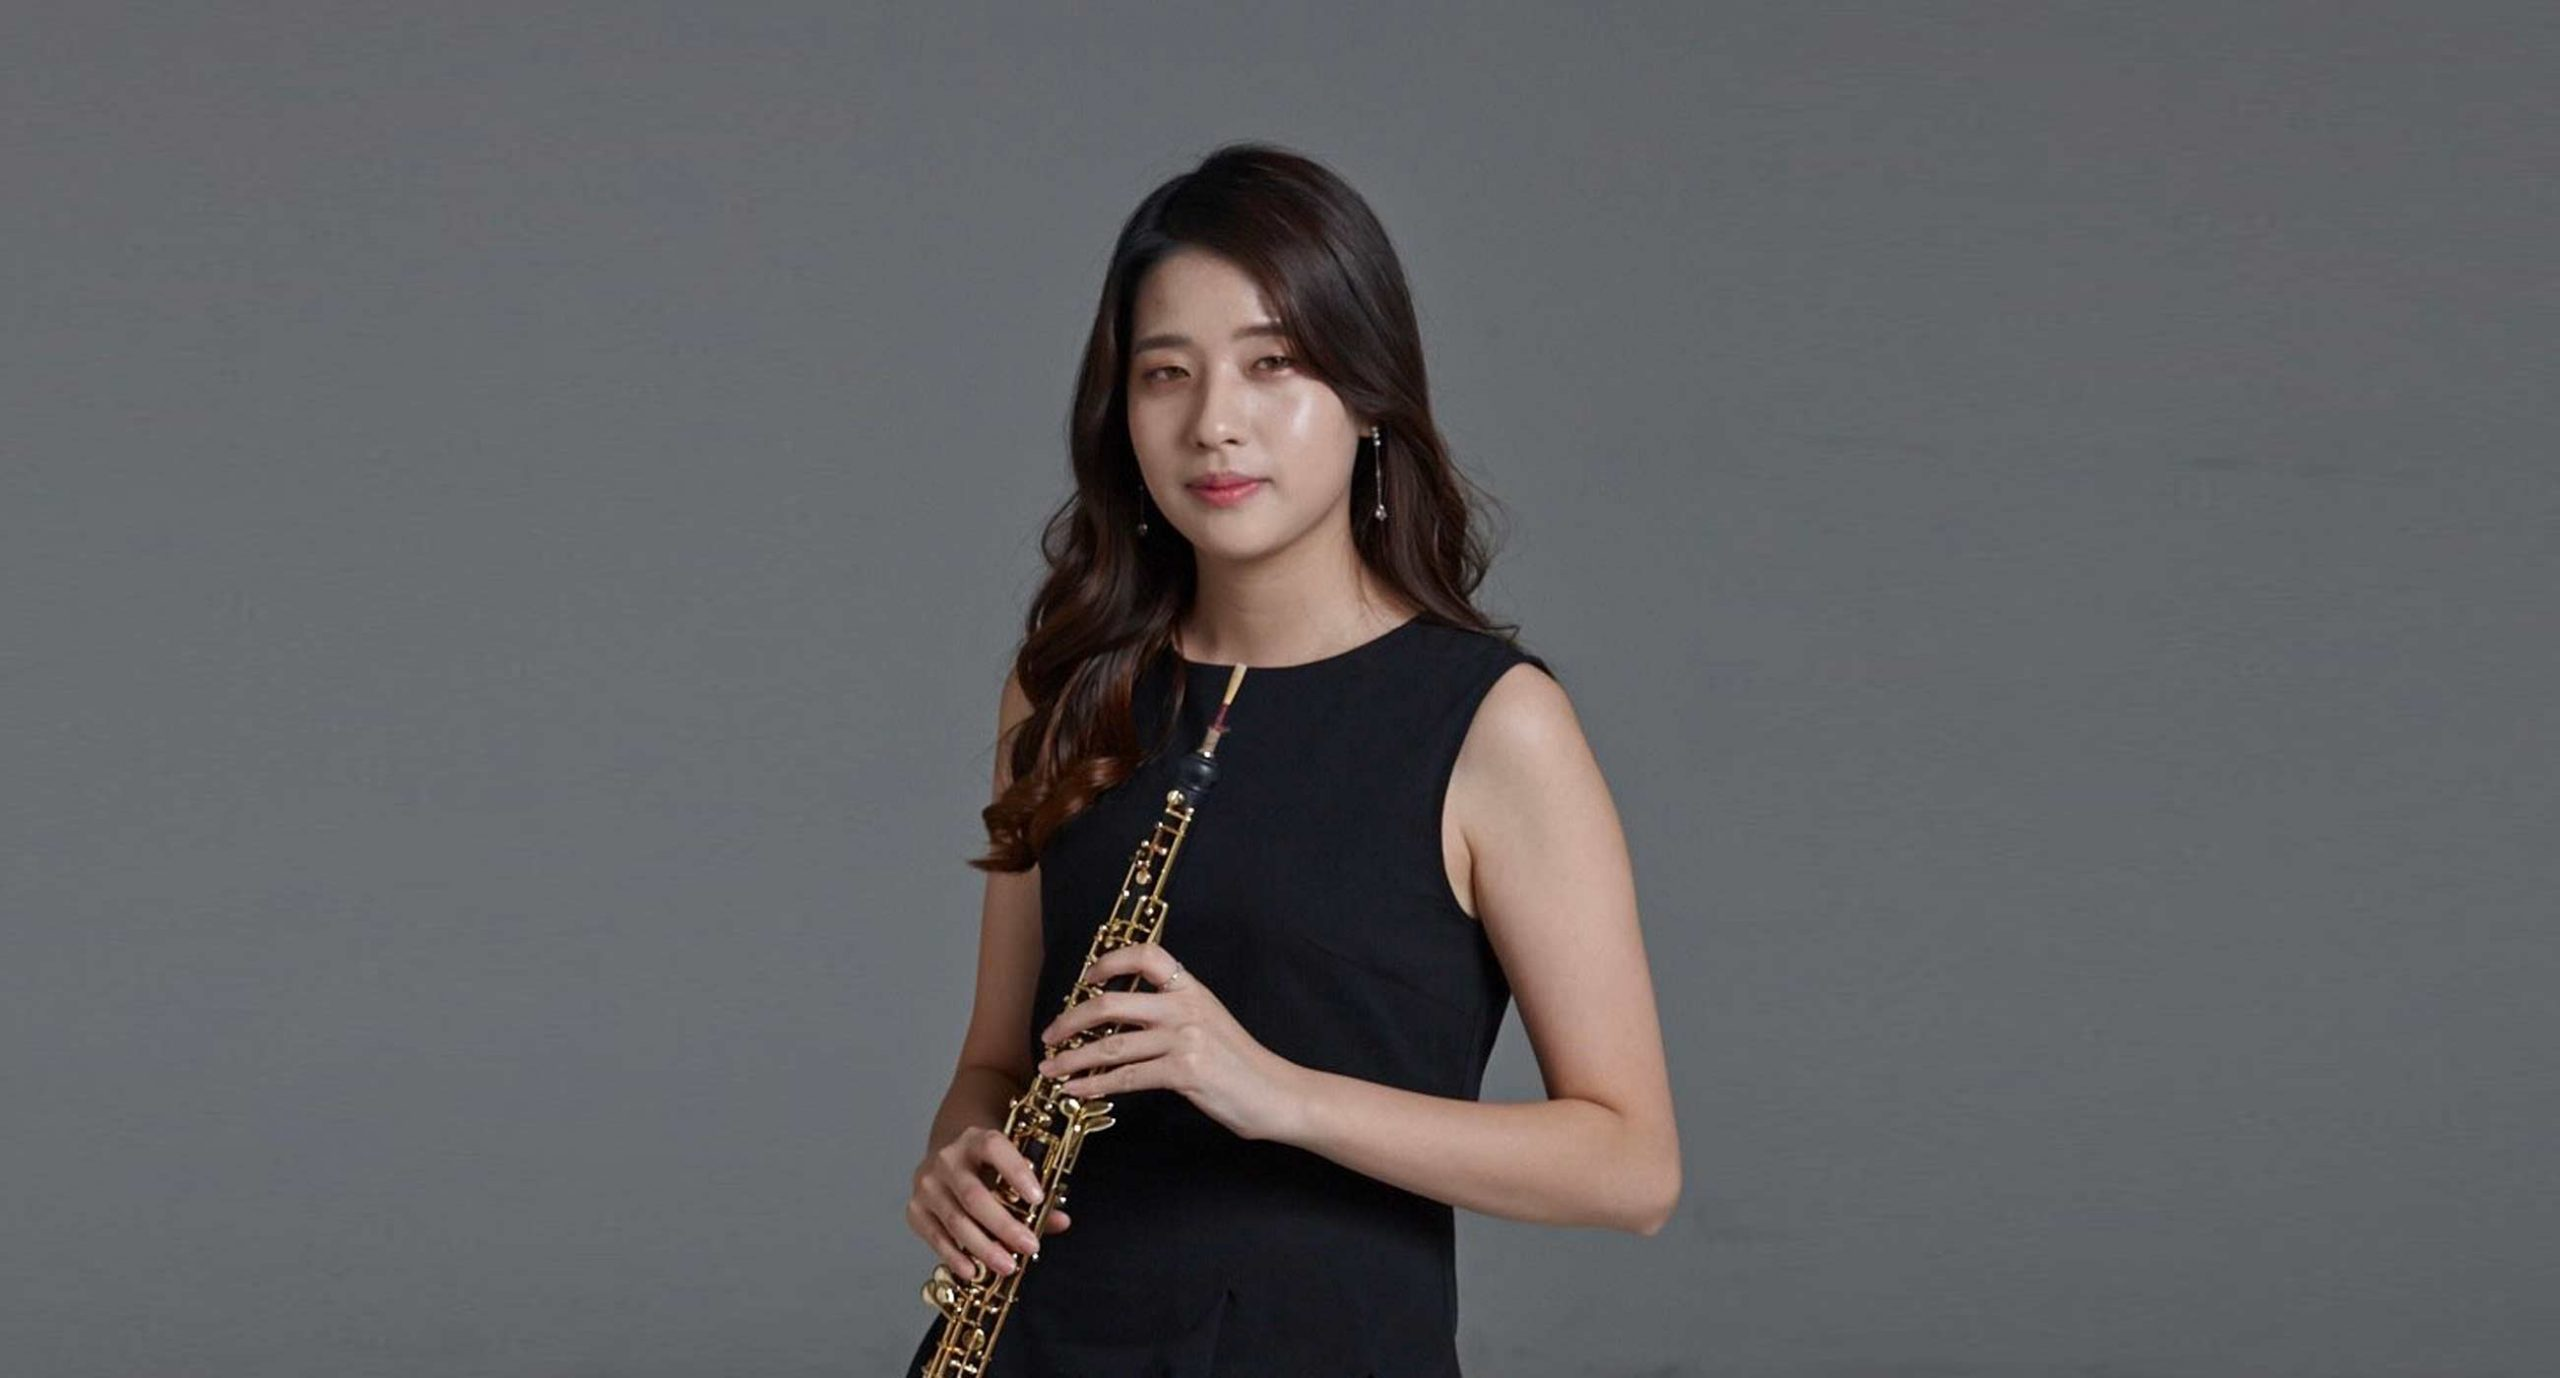 Korean woman with long black hair holding a oboe wearing a black dress against a grey background